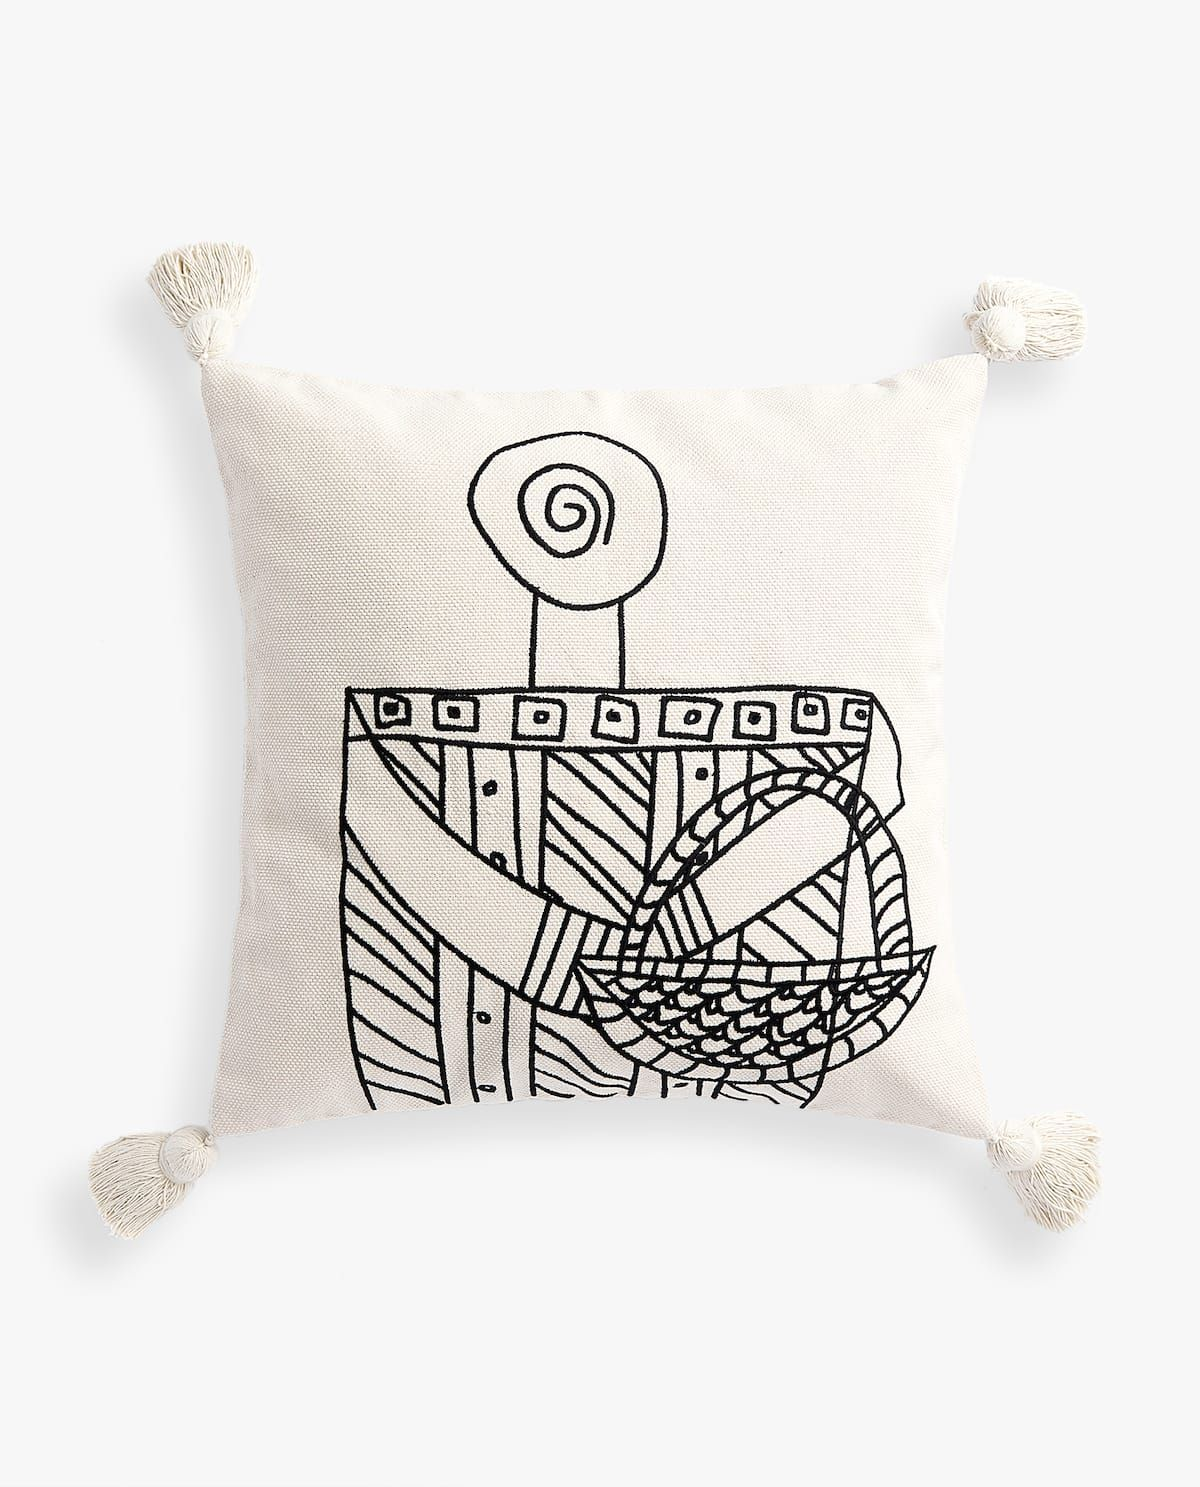 Cushions Bedroom New Collection Zara Home United Kingdom Housse De Coussin Oreillers Brodes Oreille